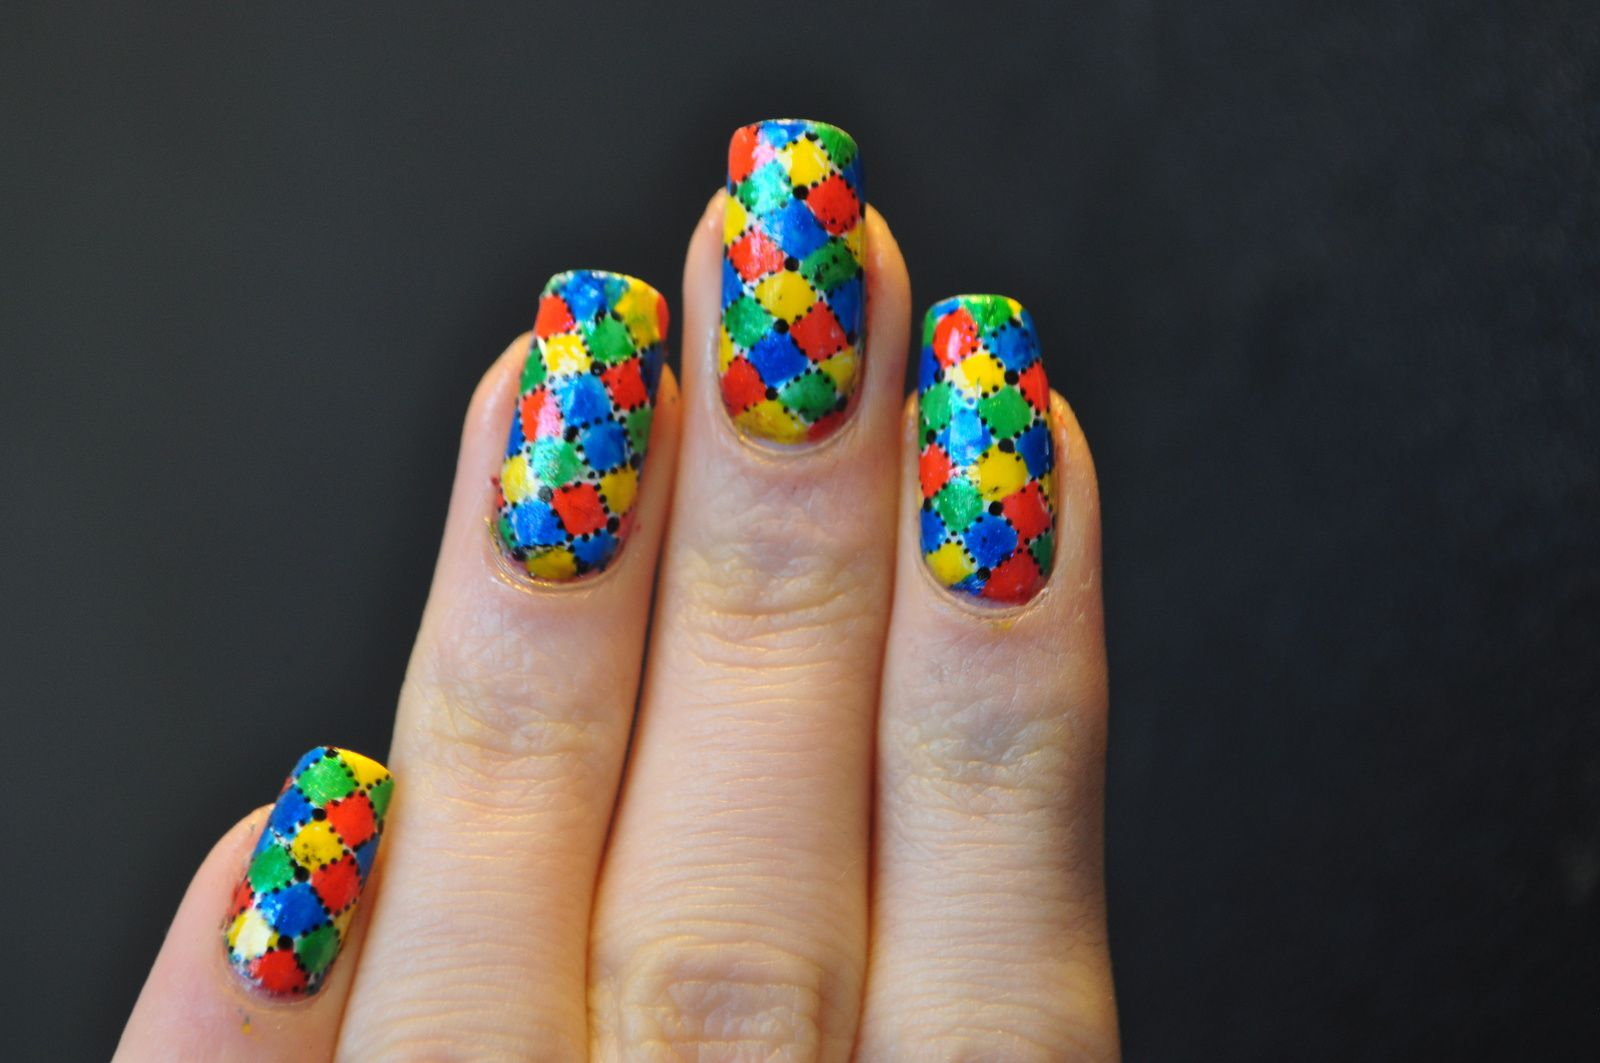 [Nailstorming] Carnaval